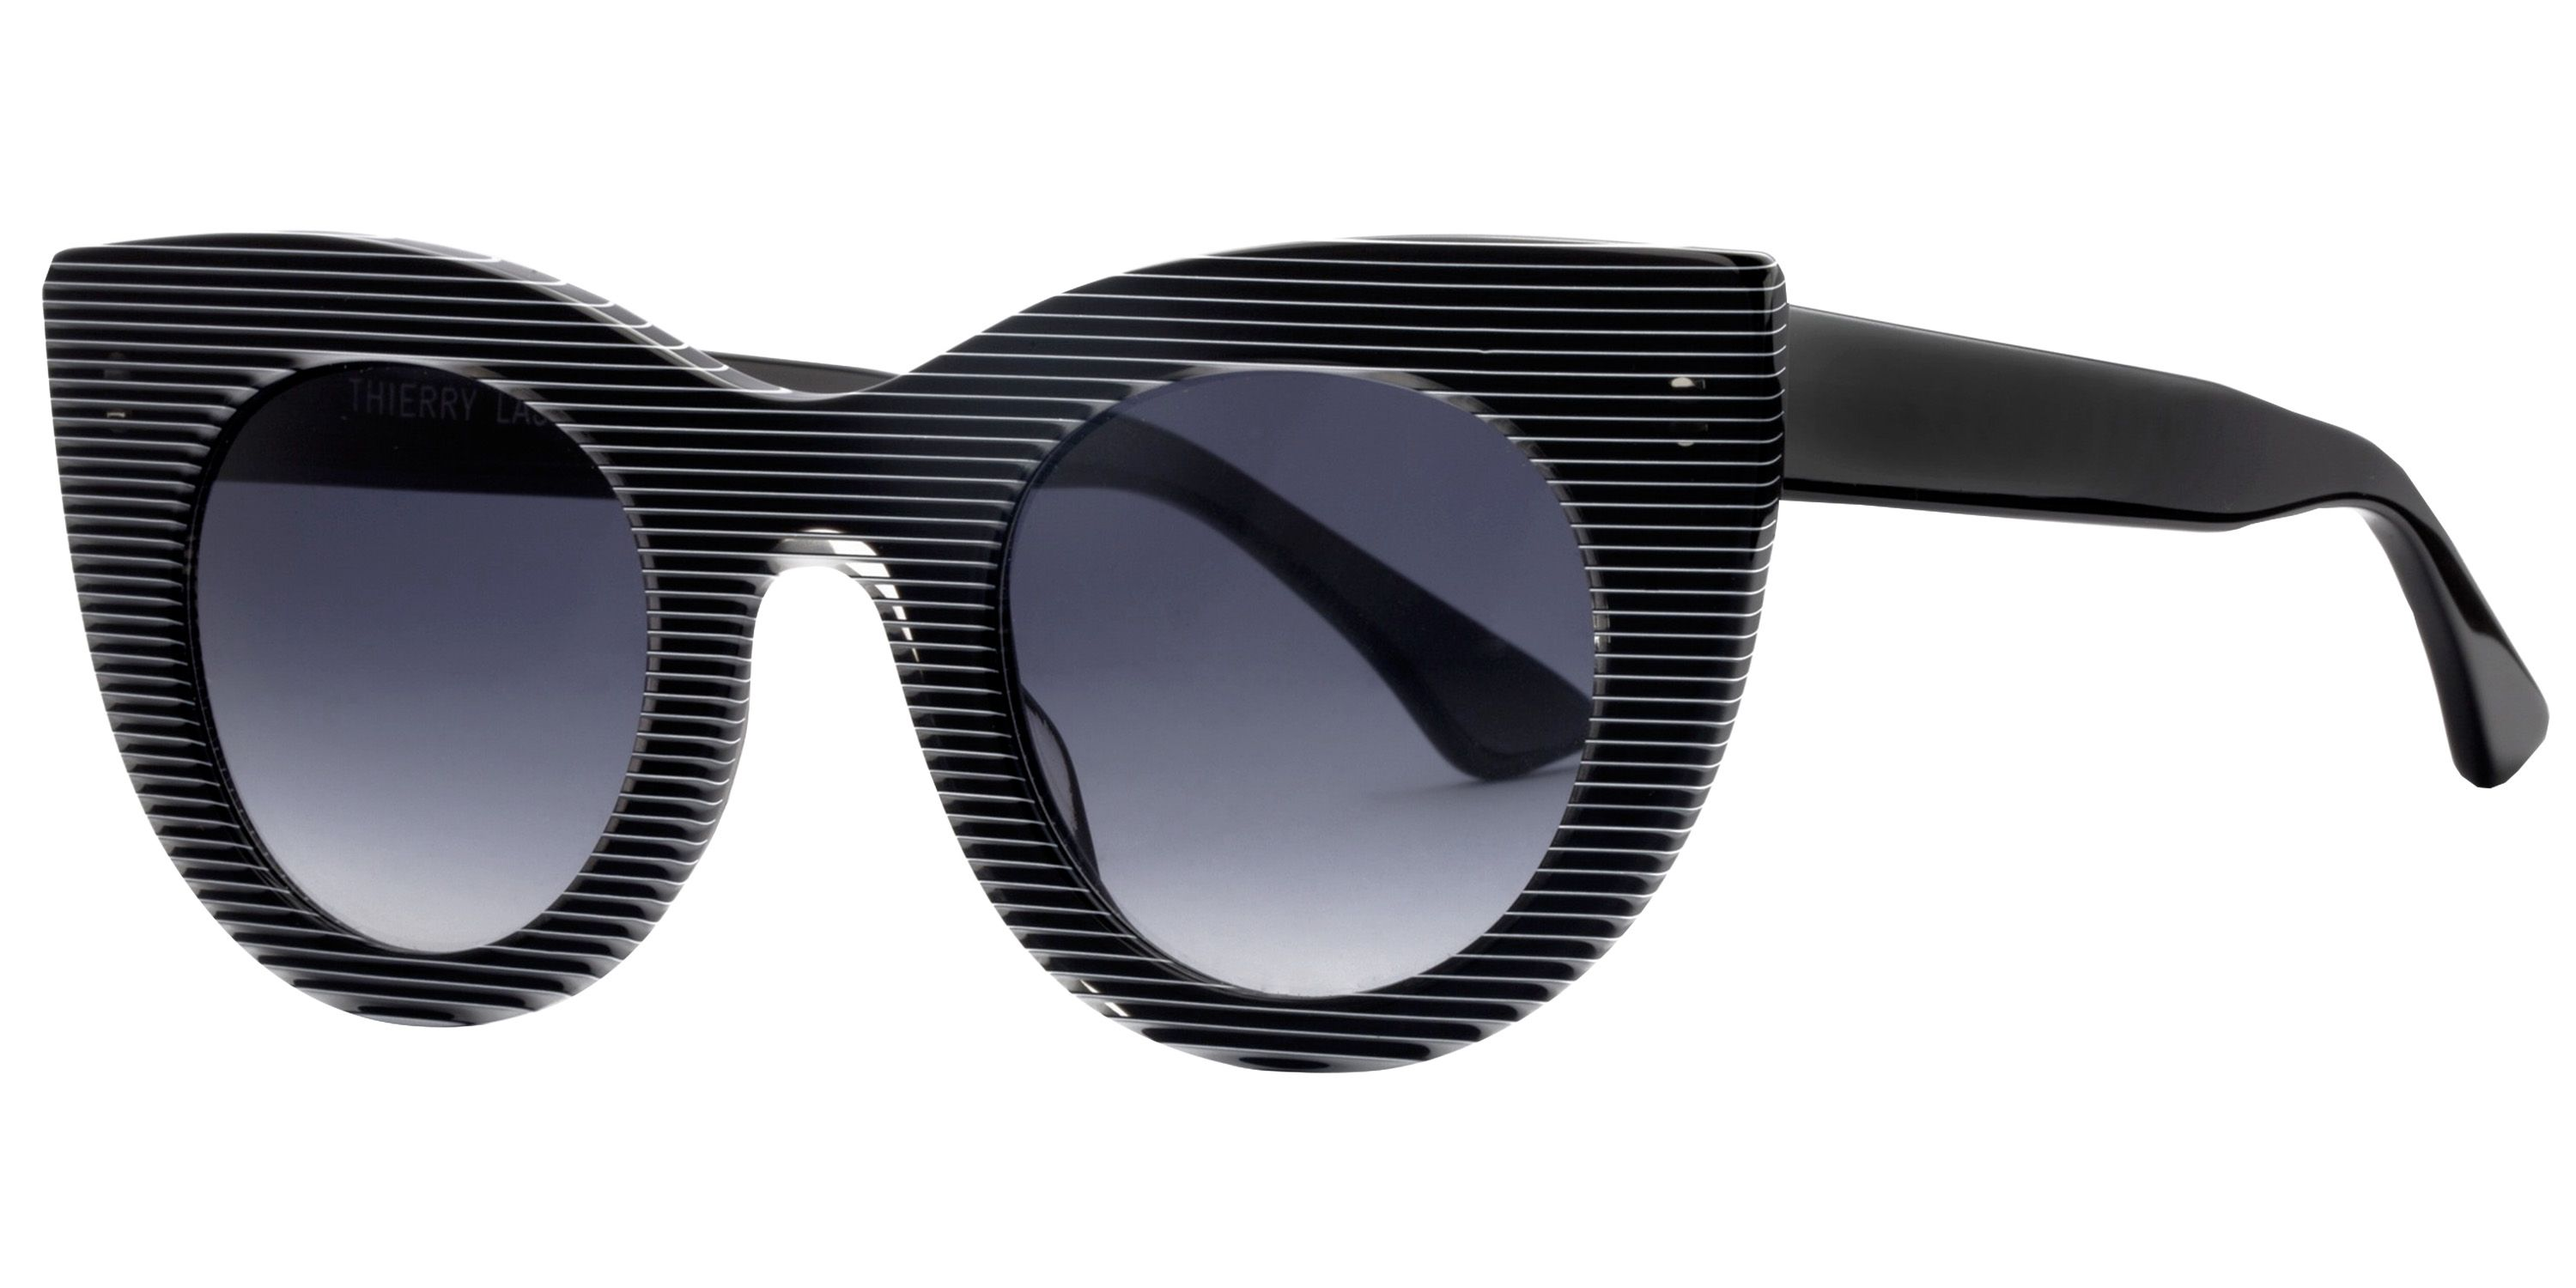 "<strong>Theirry Lasry</strong> sunglasses, $385, <a target=""_blank"" href=""http://www.thierrylasry.com/collections/2013-2/?id=40"">theirrylasry.com</a>."